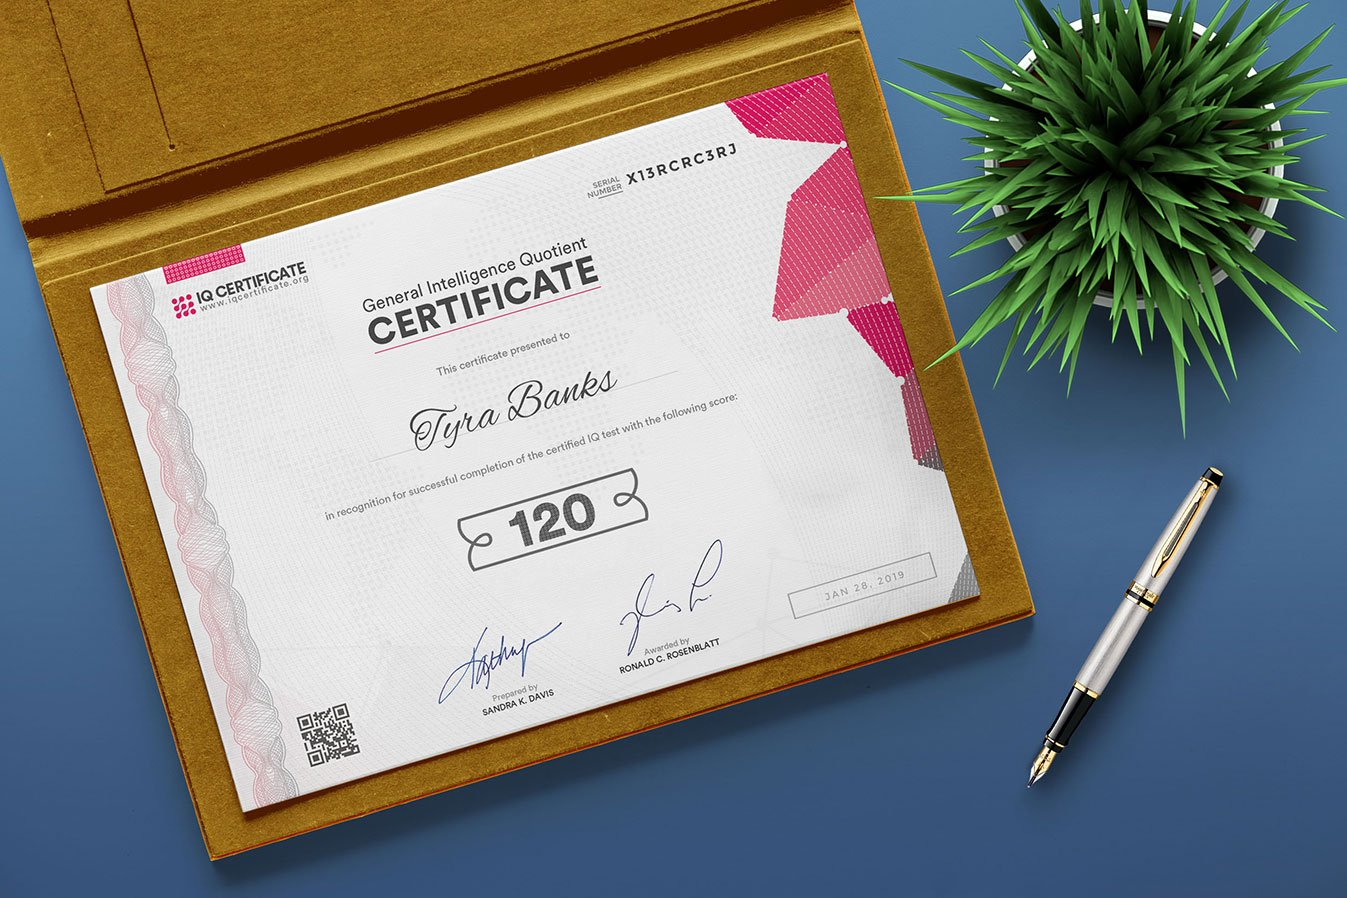 IQ Certification 2019